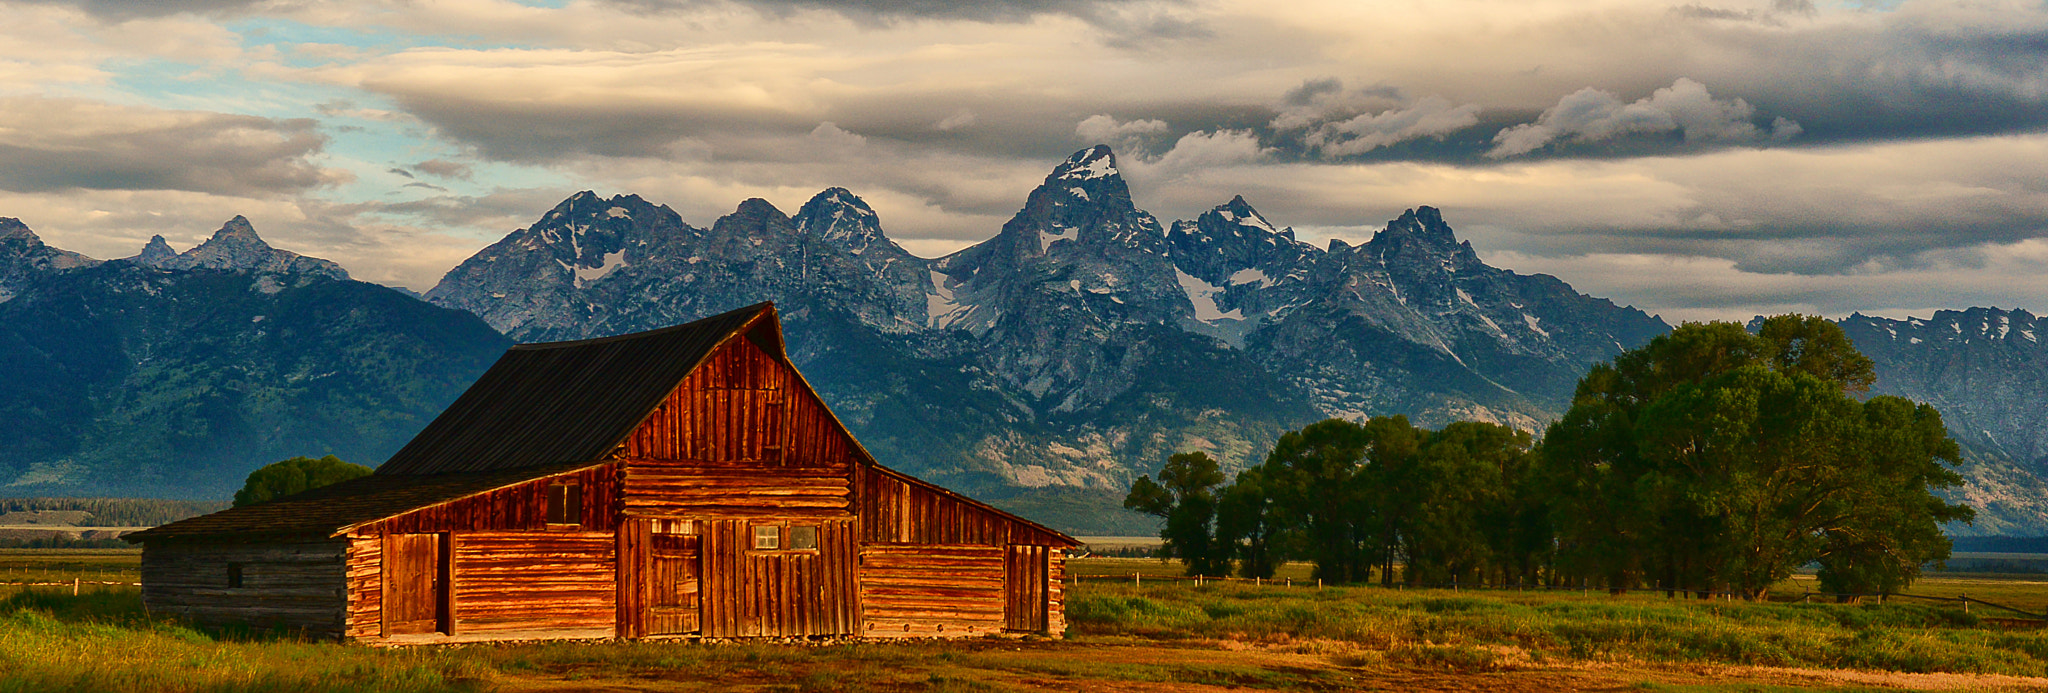 Photograph Symbol of the West by Jeff Clow on 500px